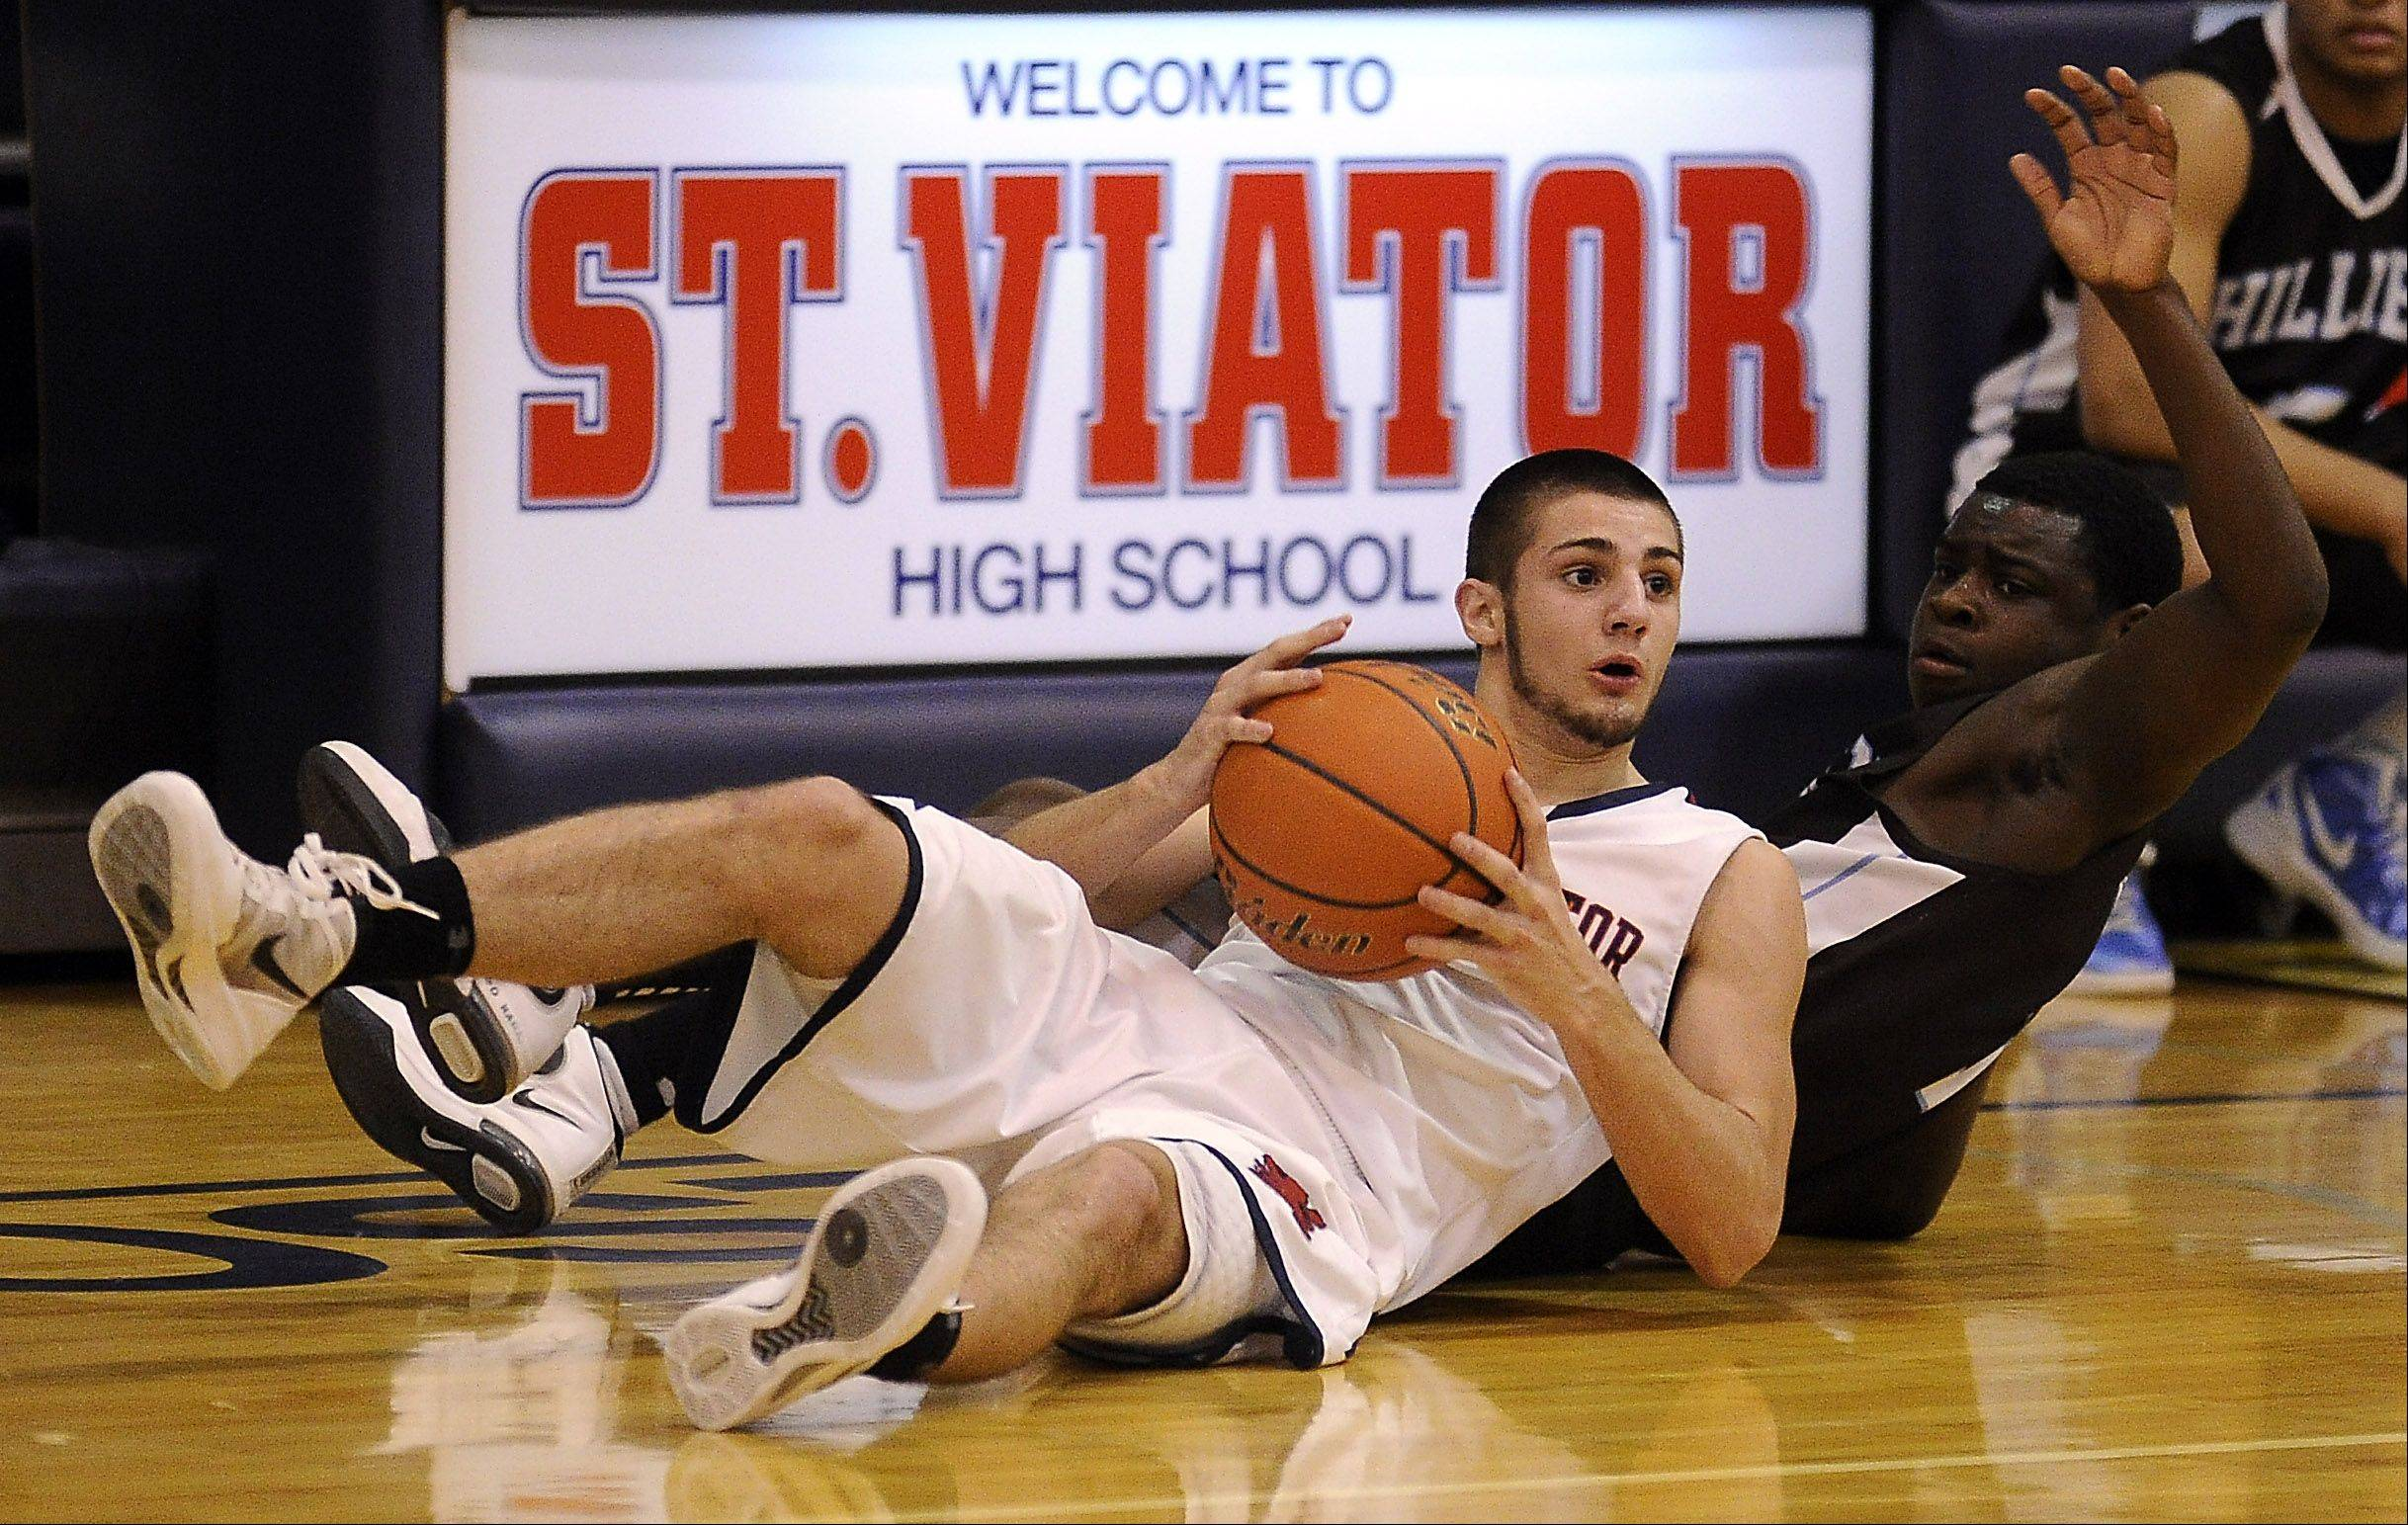 Historic night of firsts for St. Viator